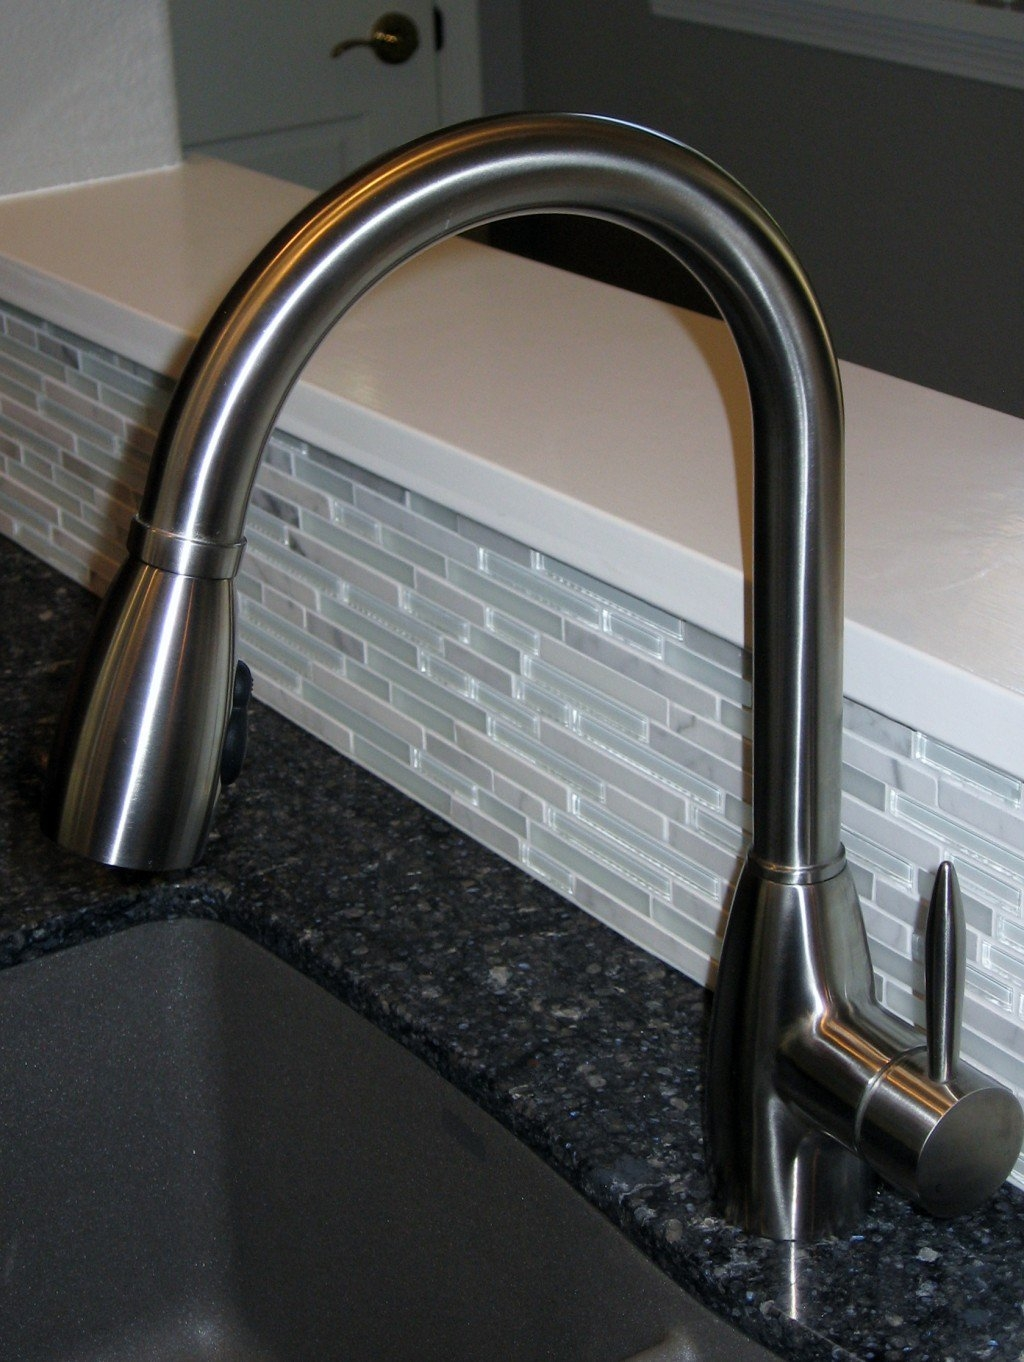 rugby sinks and faucets rugby sinks and faucets best stainless steel kitchen faucet hubpages 1024 x 1362